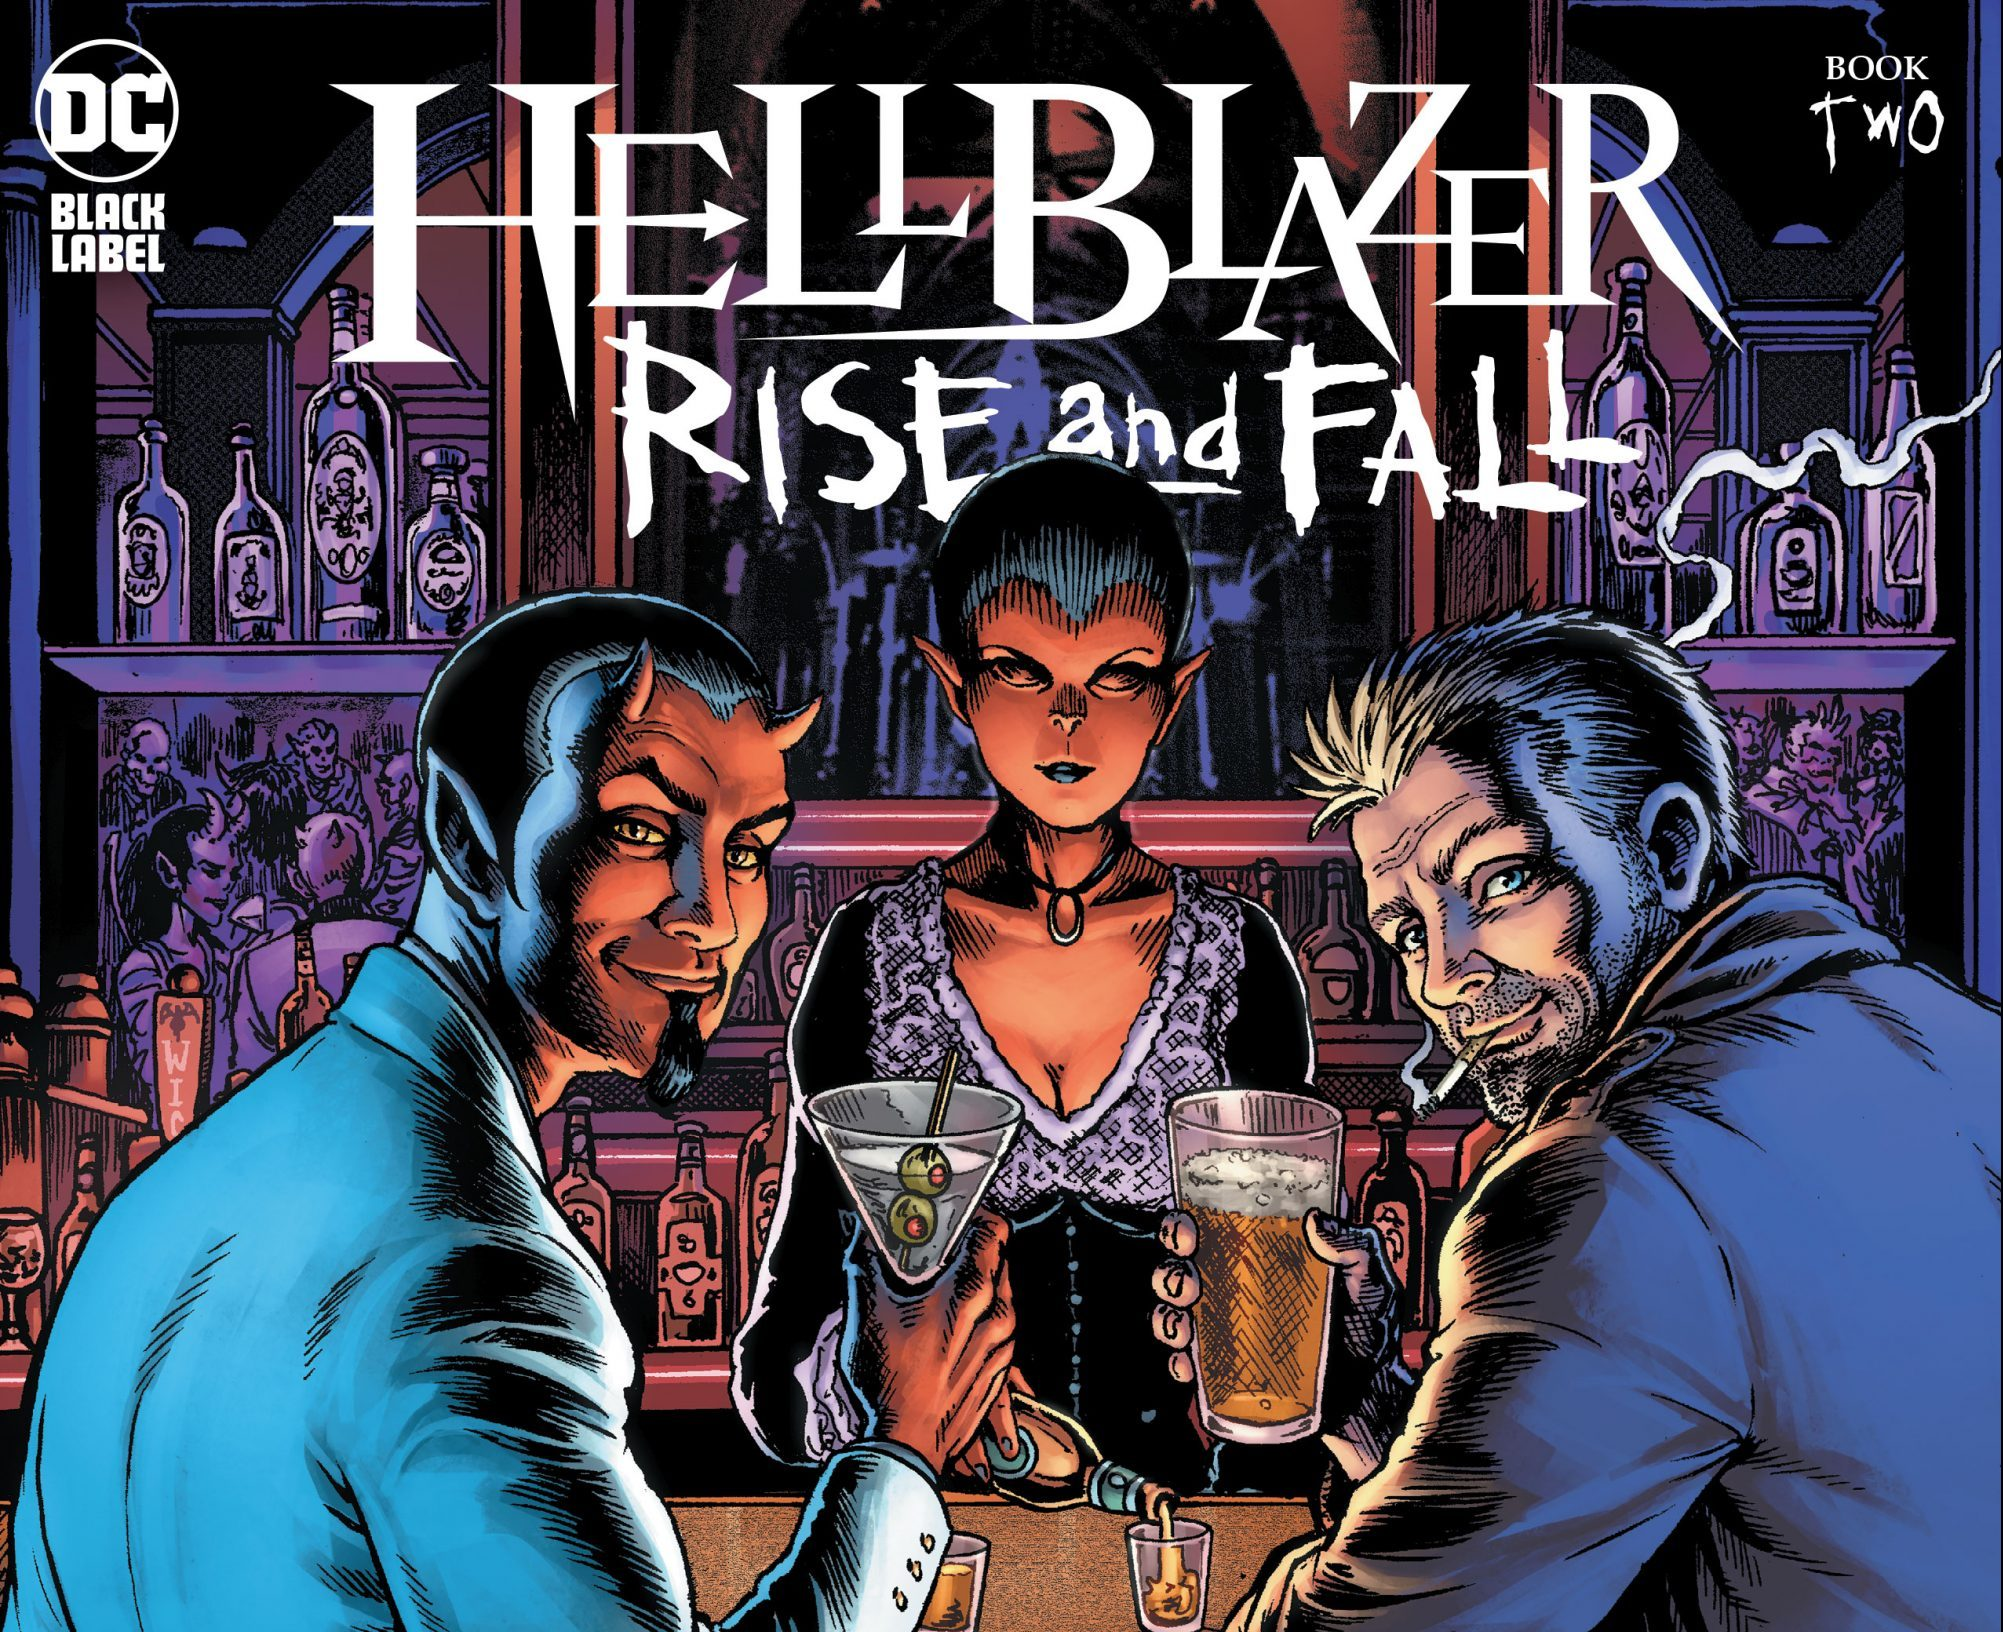 'Hellblazer: Rise and Fall' #2 review